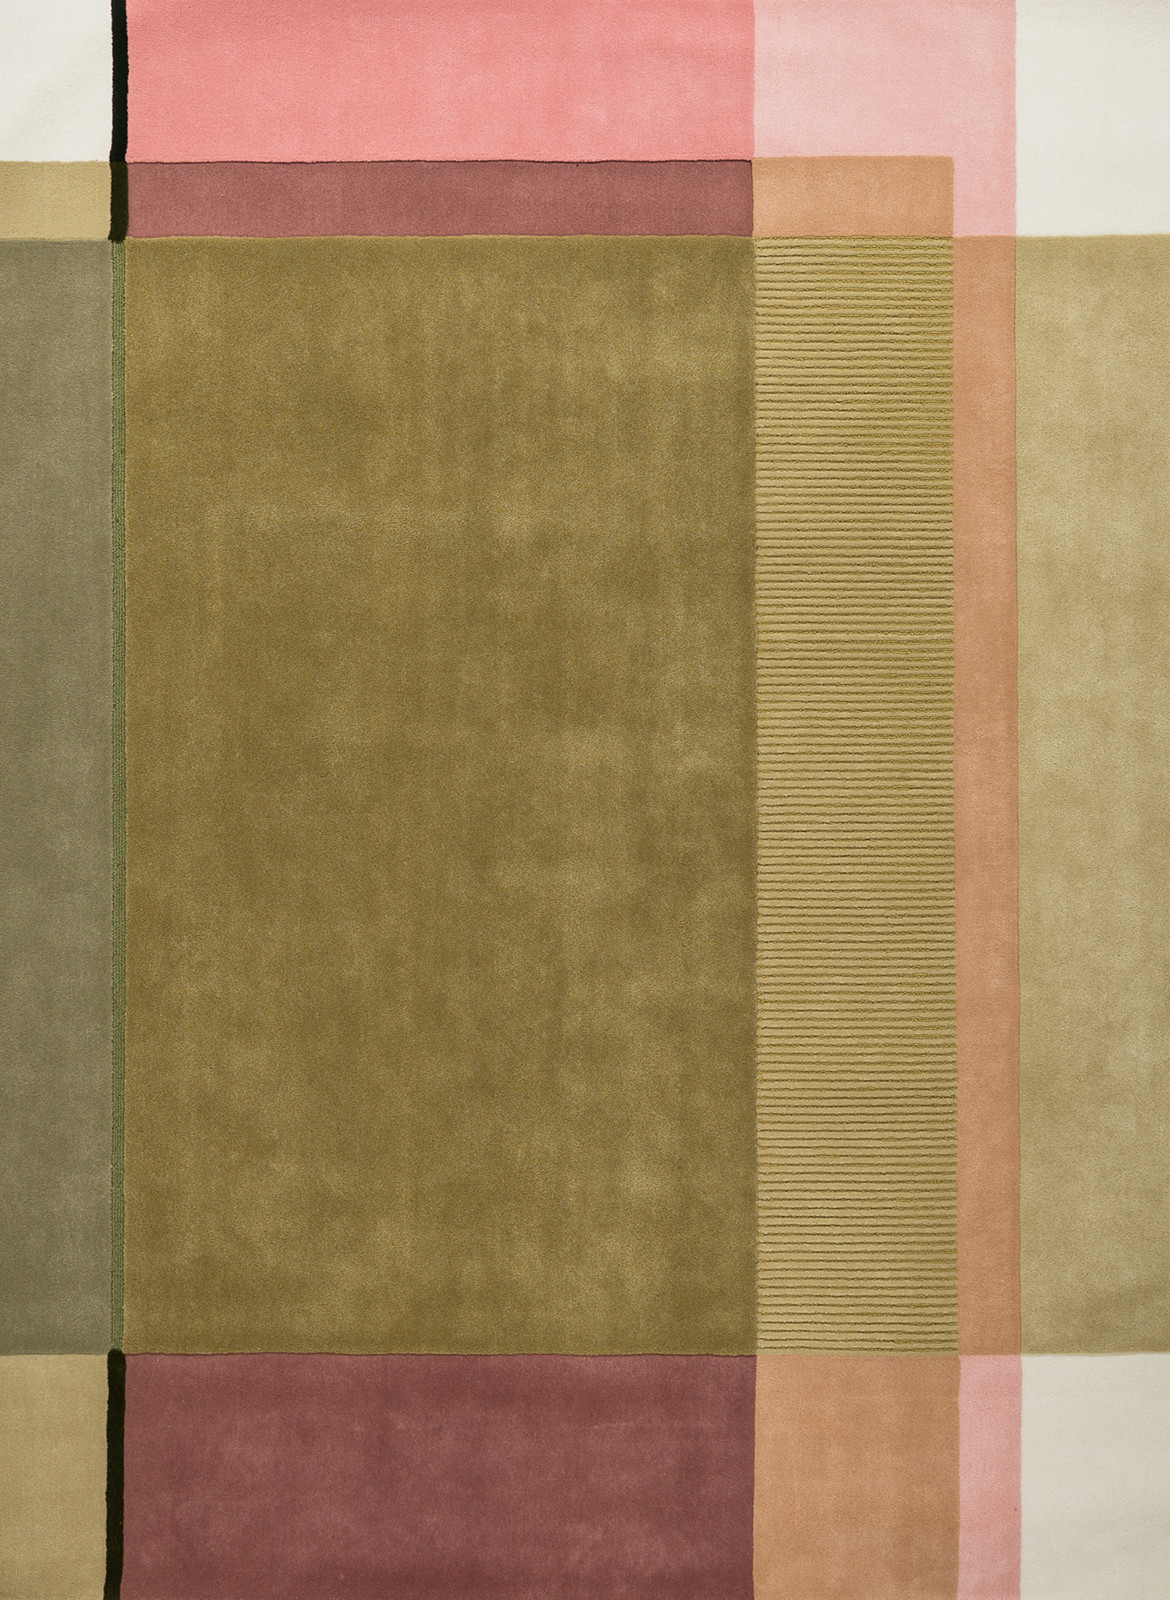 Designer Rugs Bernabeifreeman CC Richard Whitman spring colours